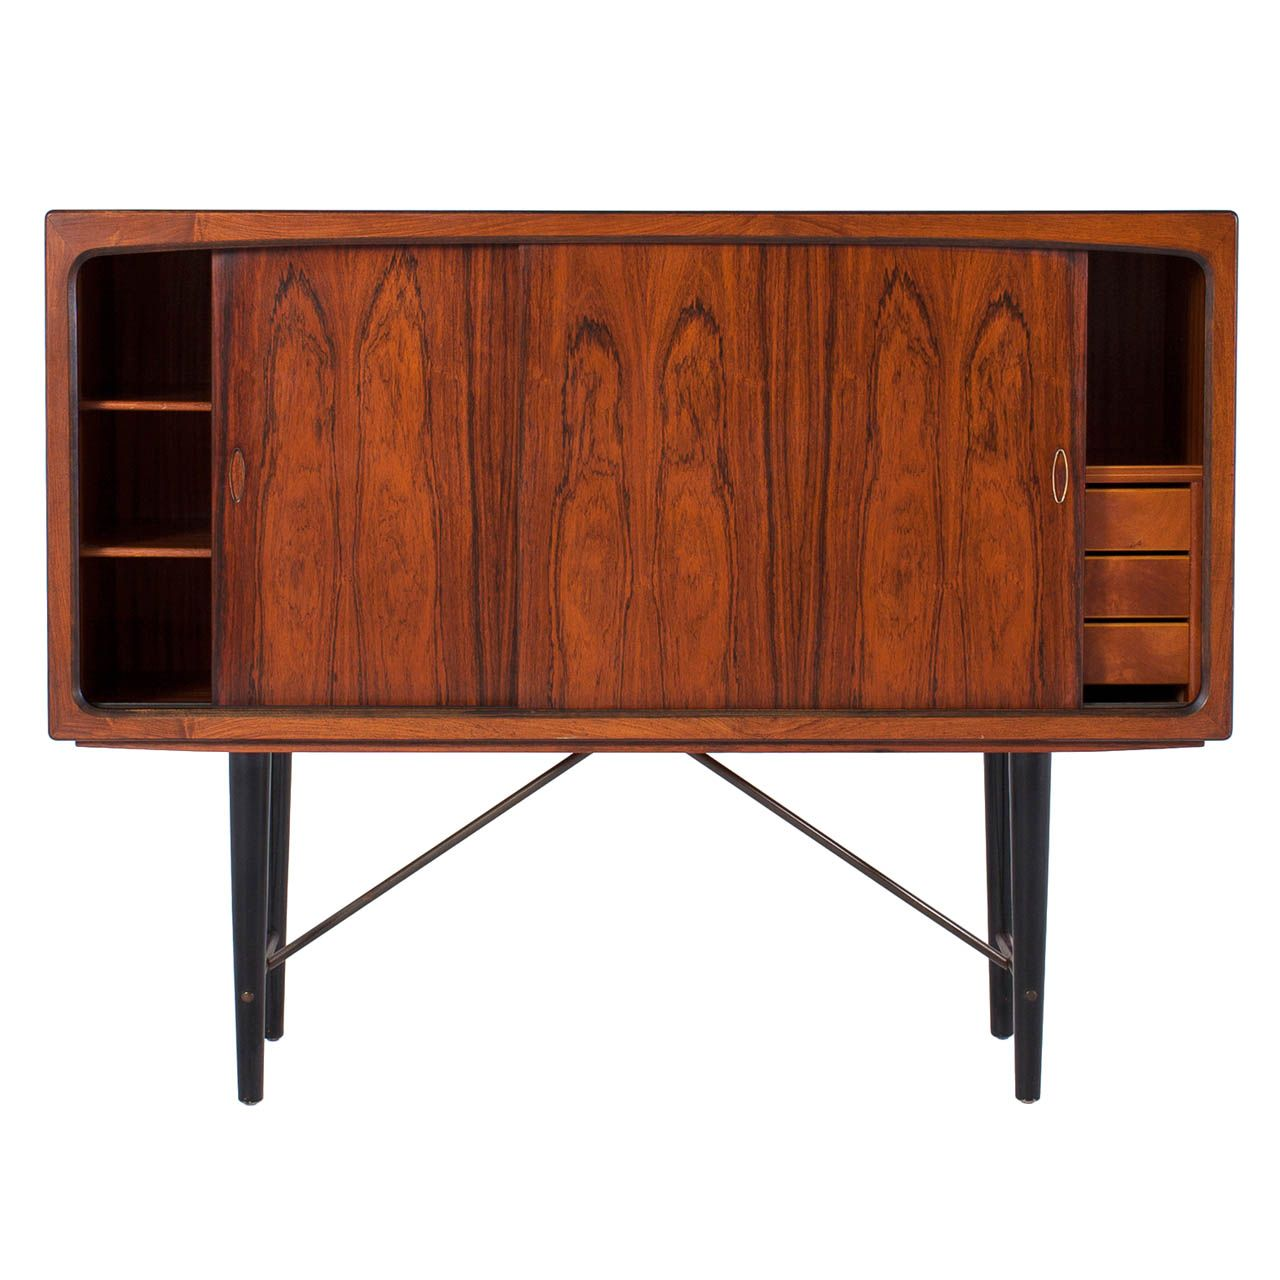 Danish Rosewood Storage Console With Sliding Doors And Copper Details